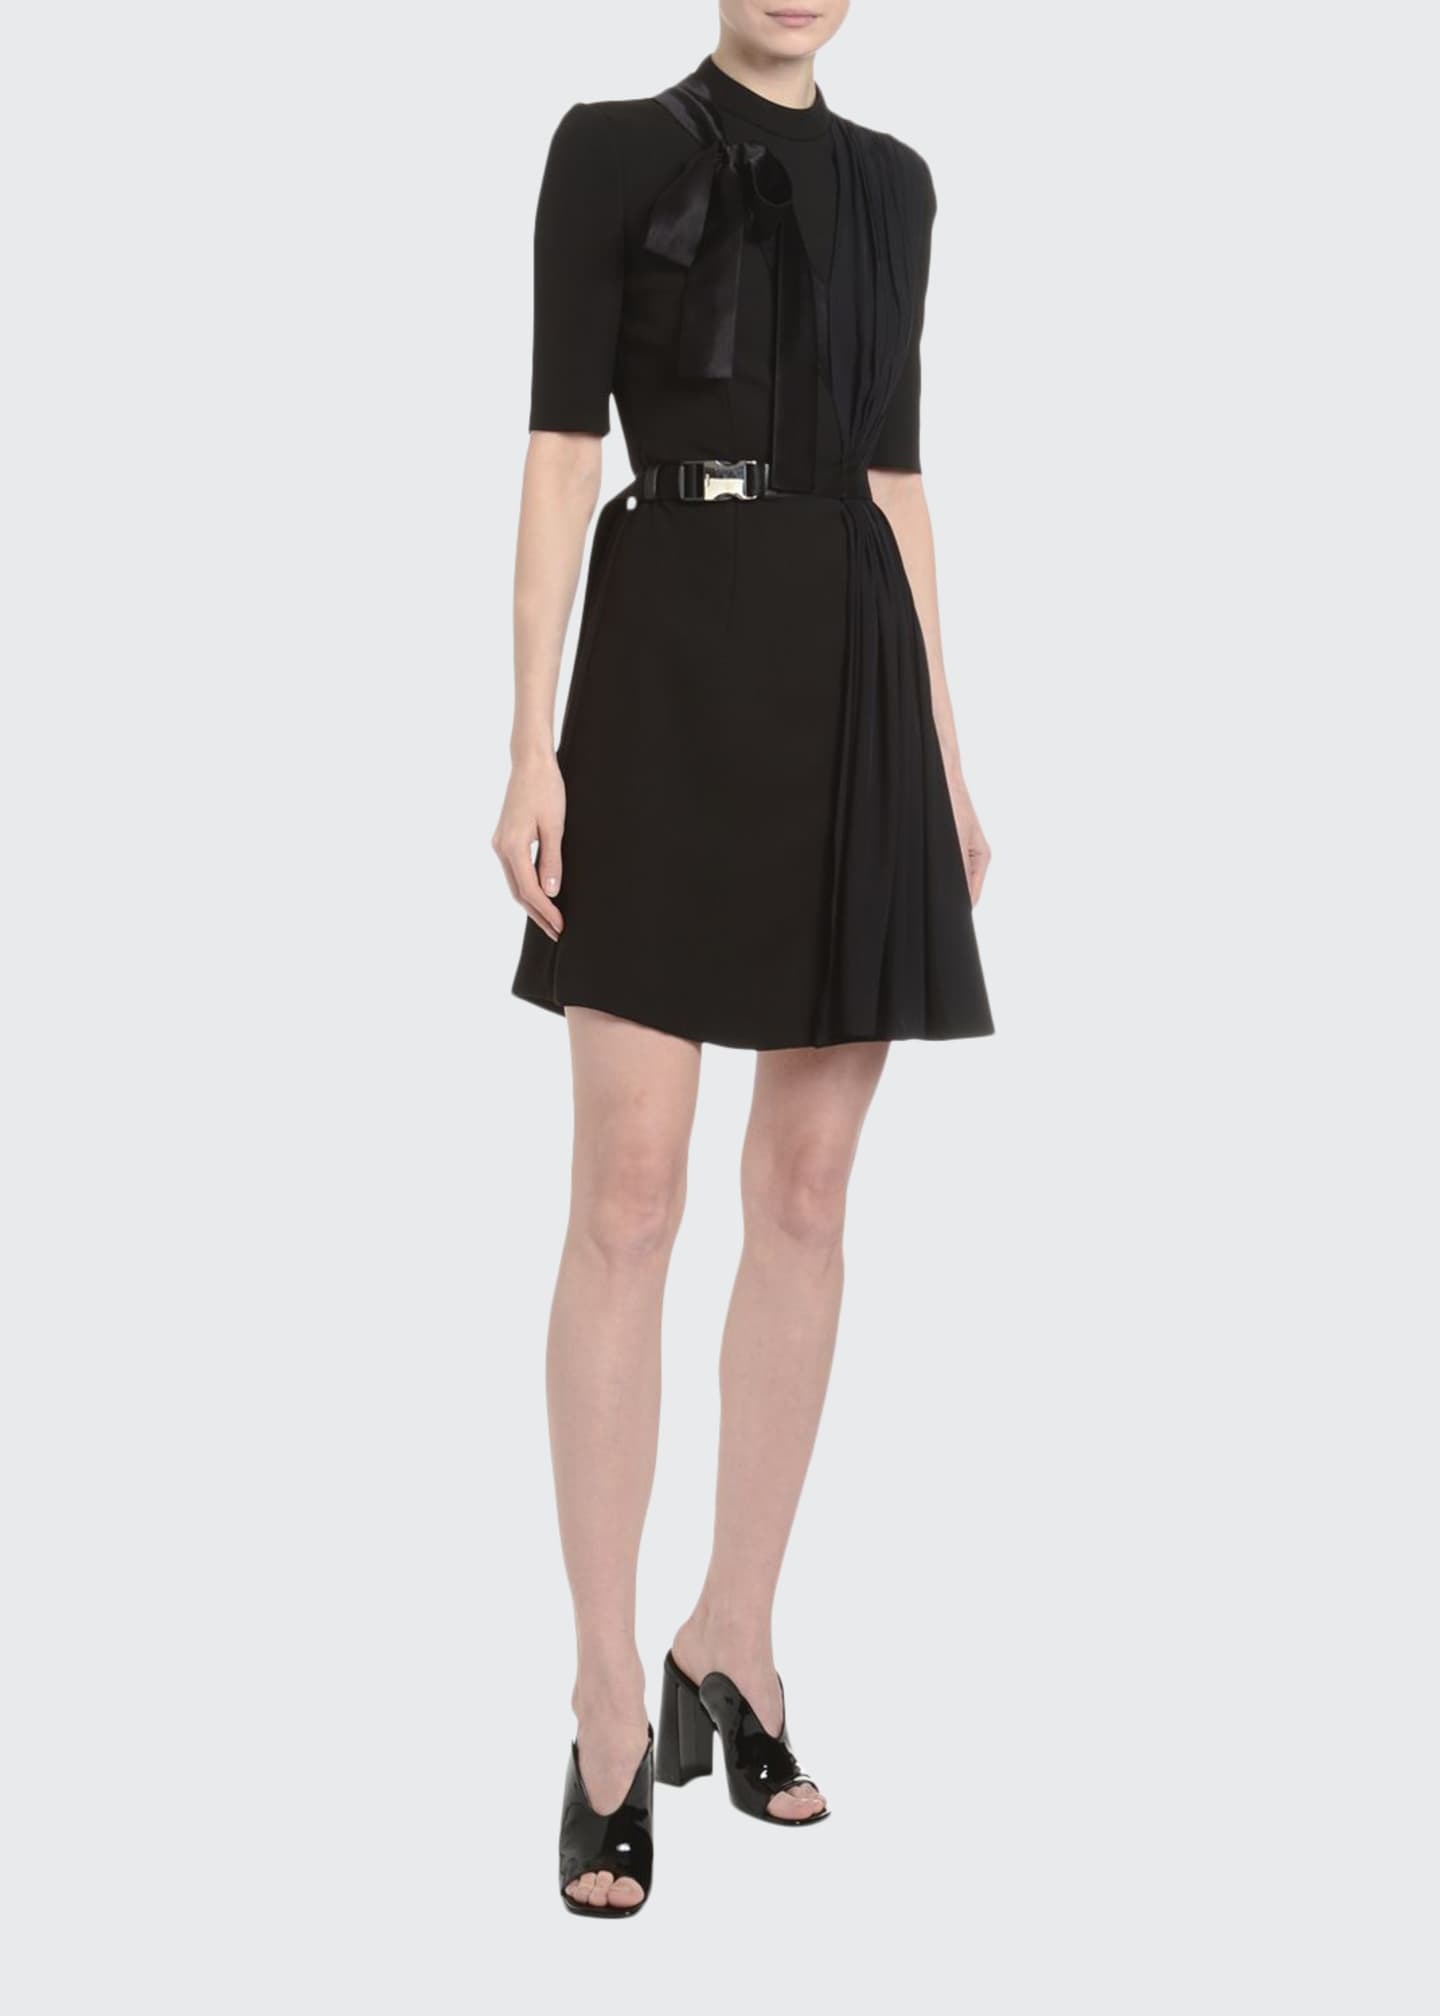 Prada Draped Tech-Twill Crepe Dress